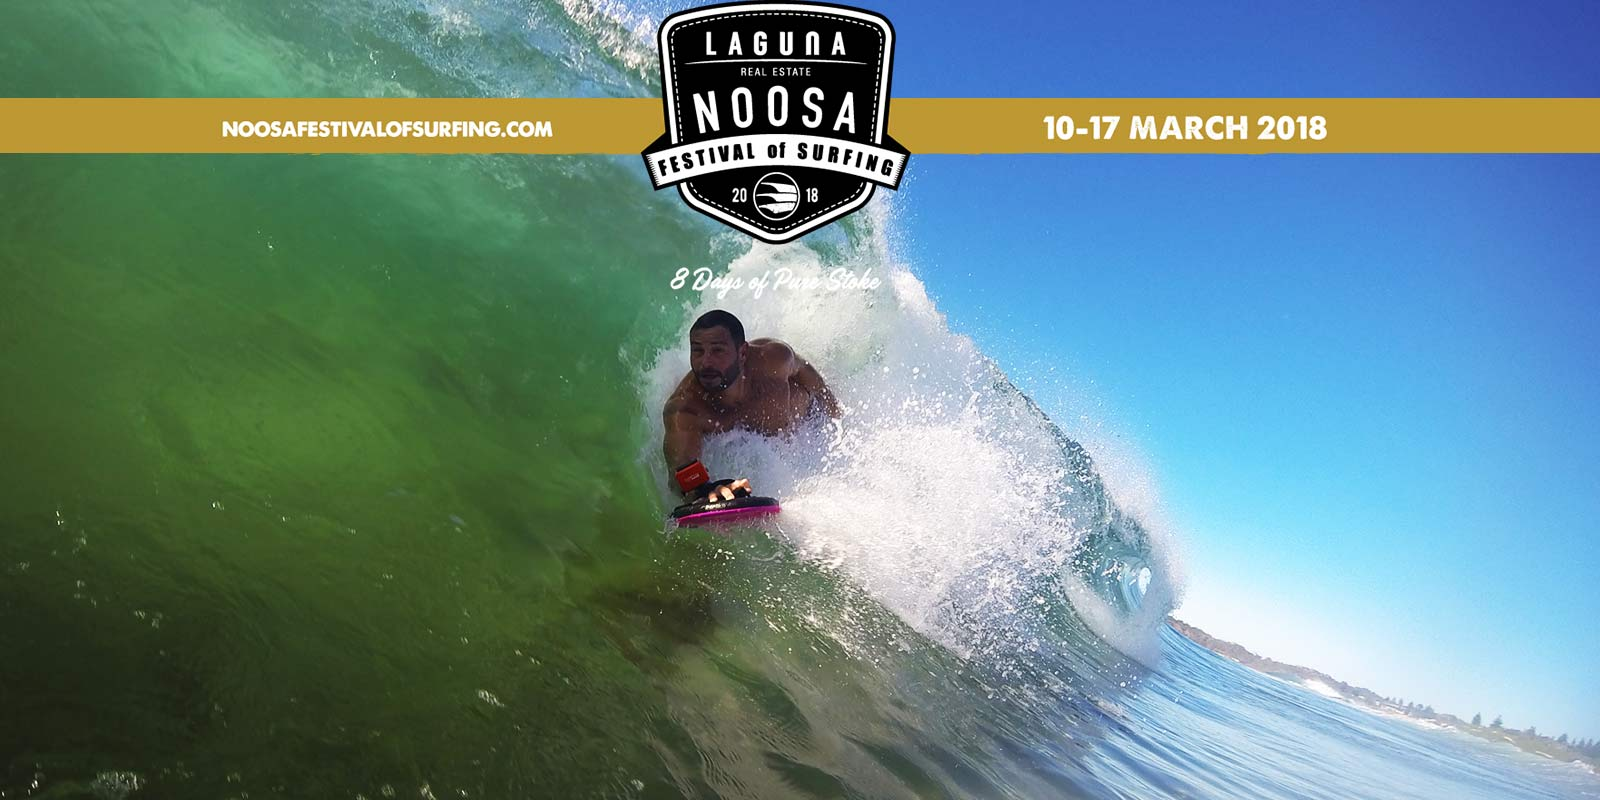 Noosa Festival of Surfing Shreds into it's 27th Year of Competition, Entertainment & Stoke